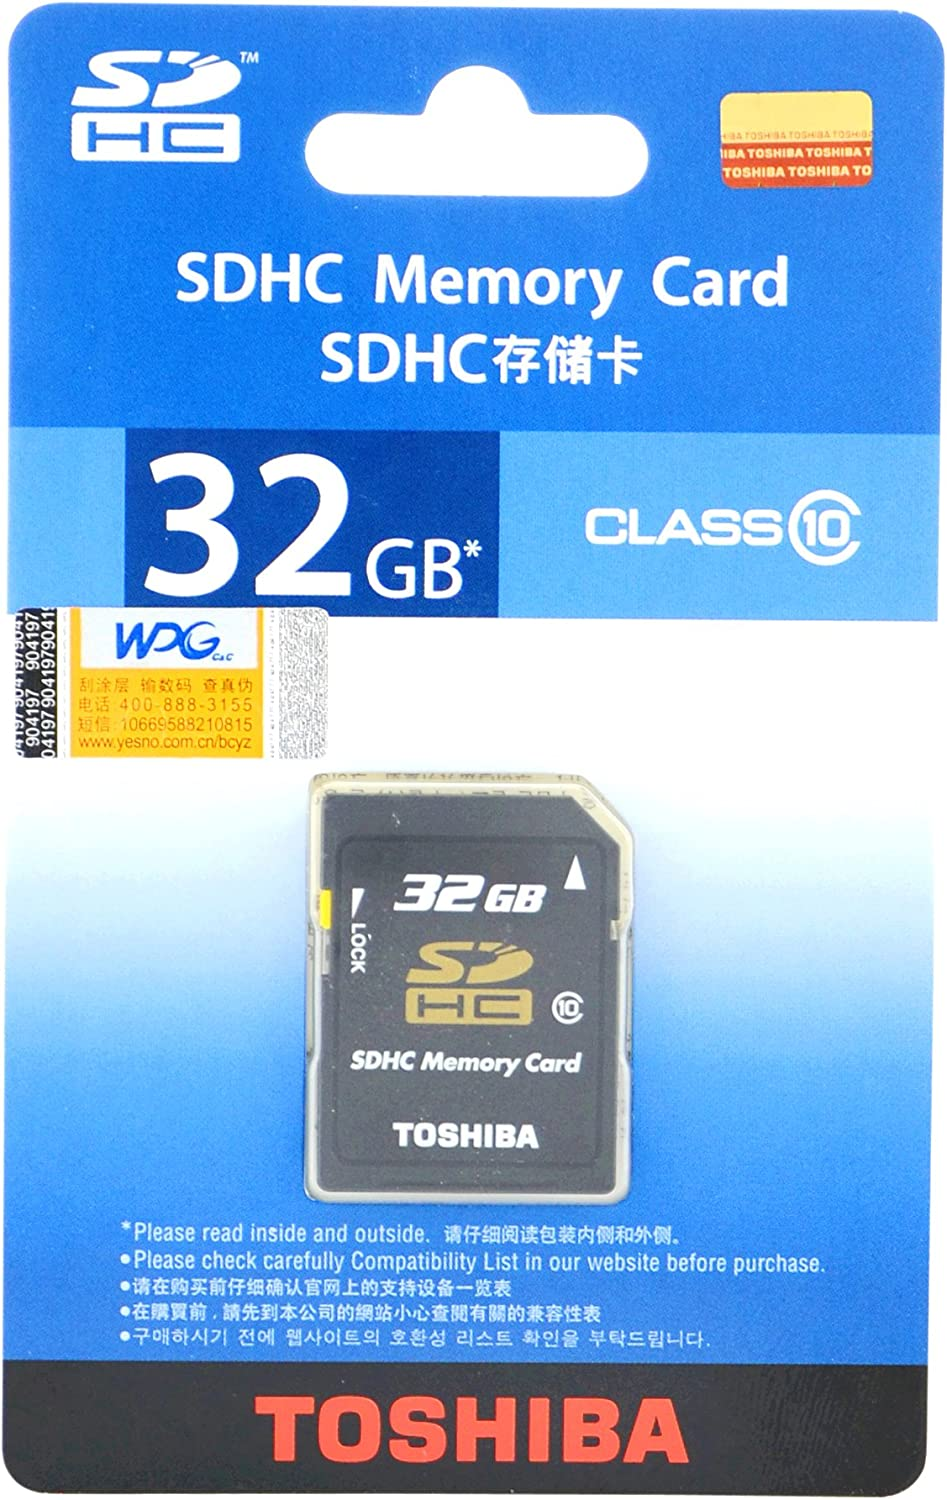 s SDHC 32GB Class 10 parallel import goods overseas package from Toshiba write speed of 11MB